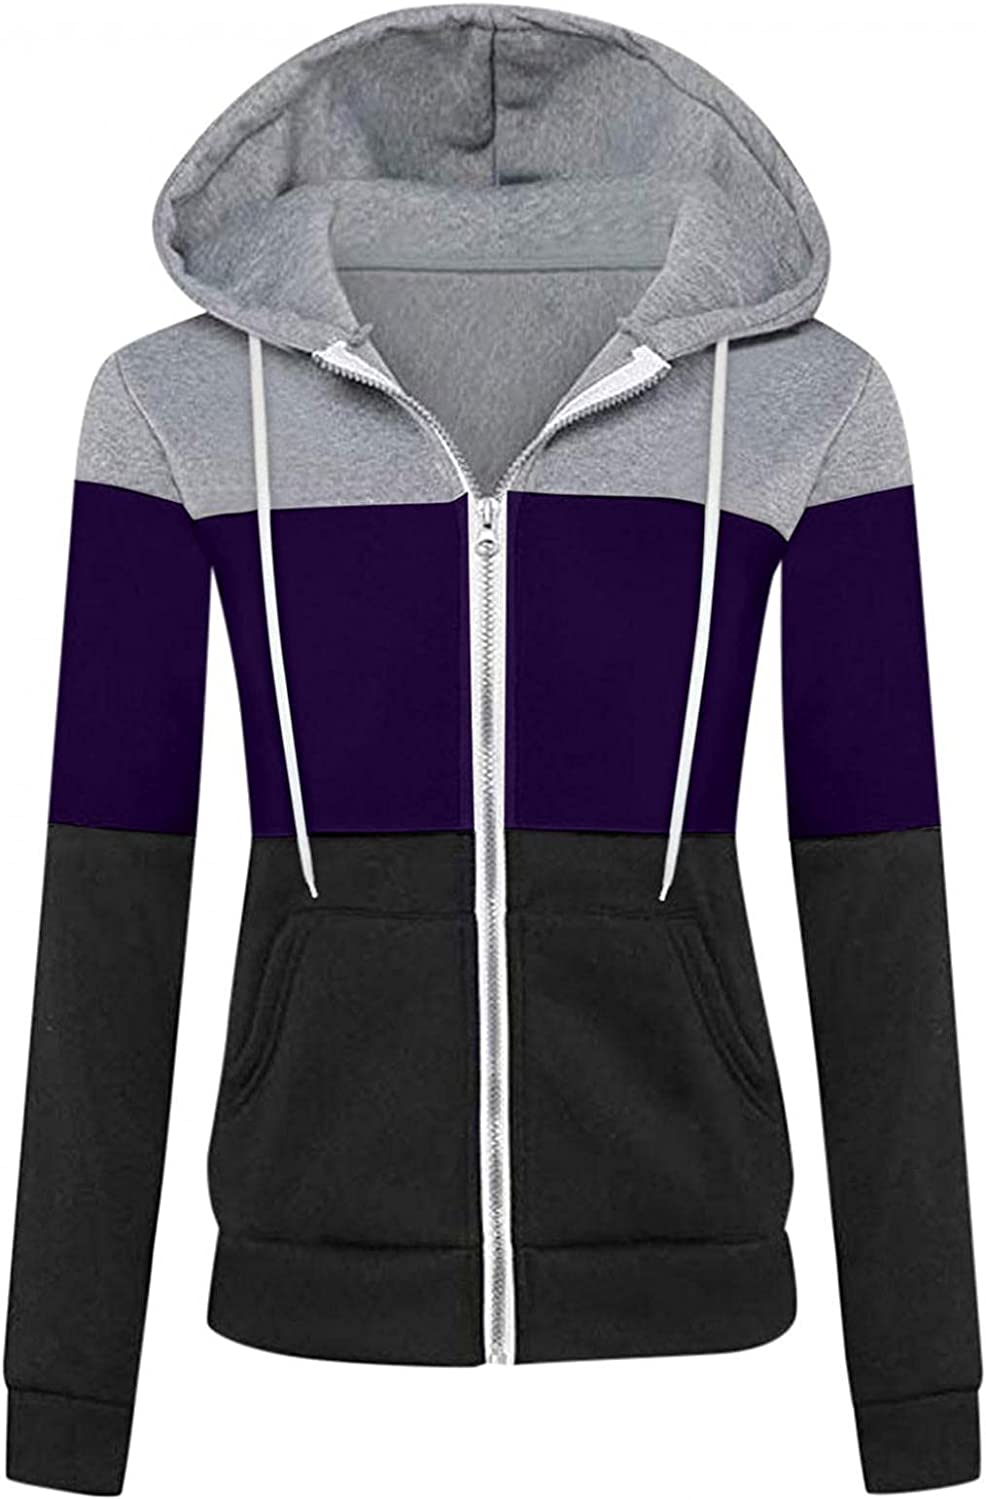 TAYBAGH Hoodies for Womens Casual Zip Up Loose Sport Pullover Sweatshirts Drawstring Long Sleeve Tops Blouse with Pocket